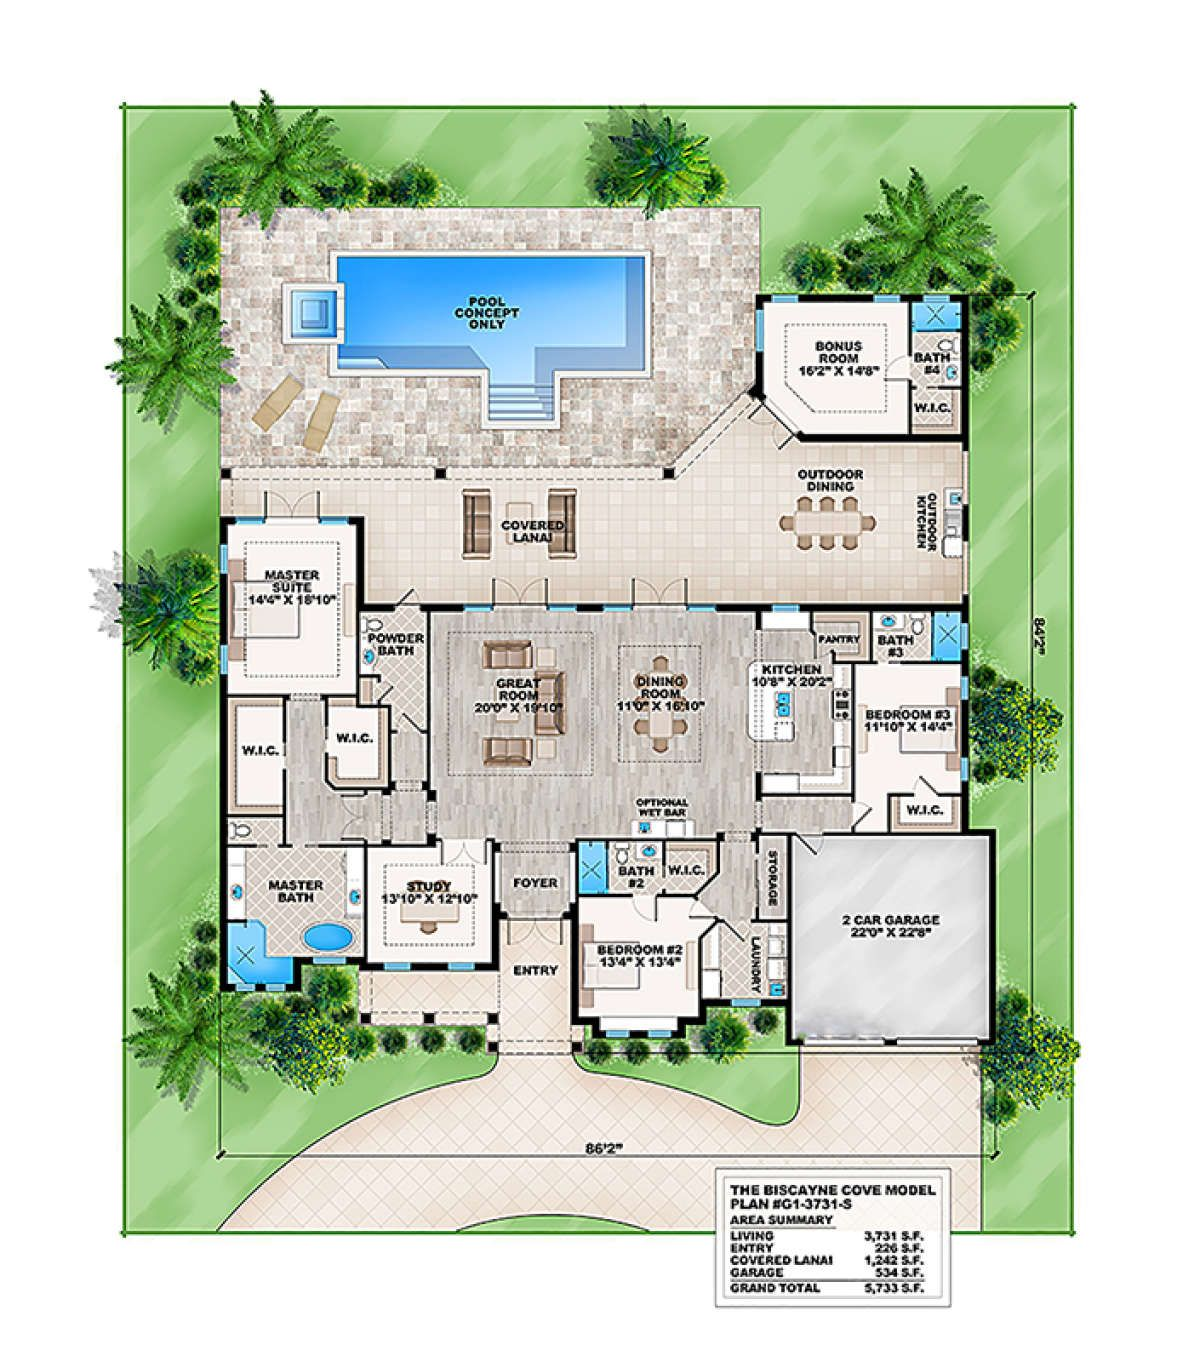 House Plan 207 00018 Contemporary Plan 3 731 Square Feet 4 Bedrooms 4 5 Bathrooms Pool House Plans Florida House Plans Contemporary House Plans